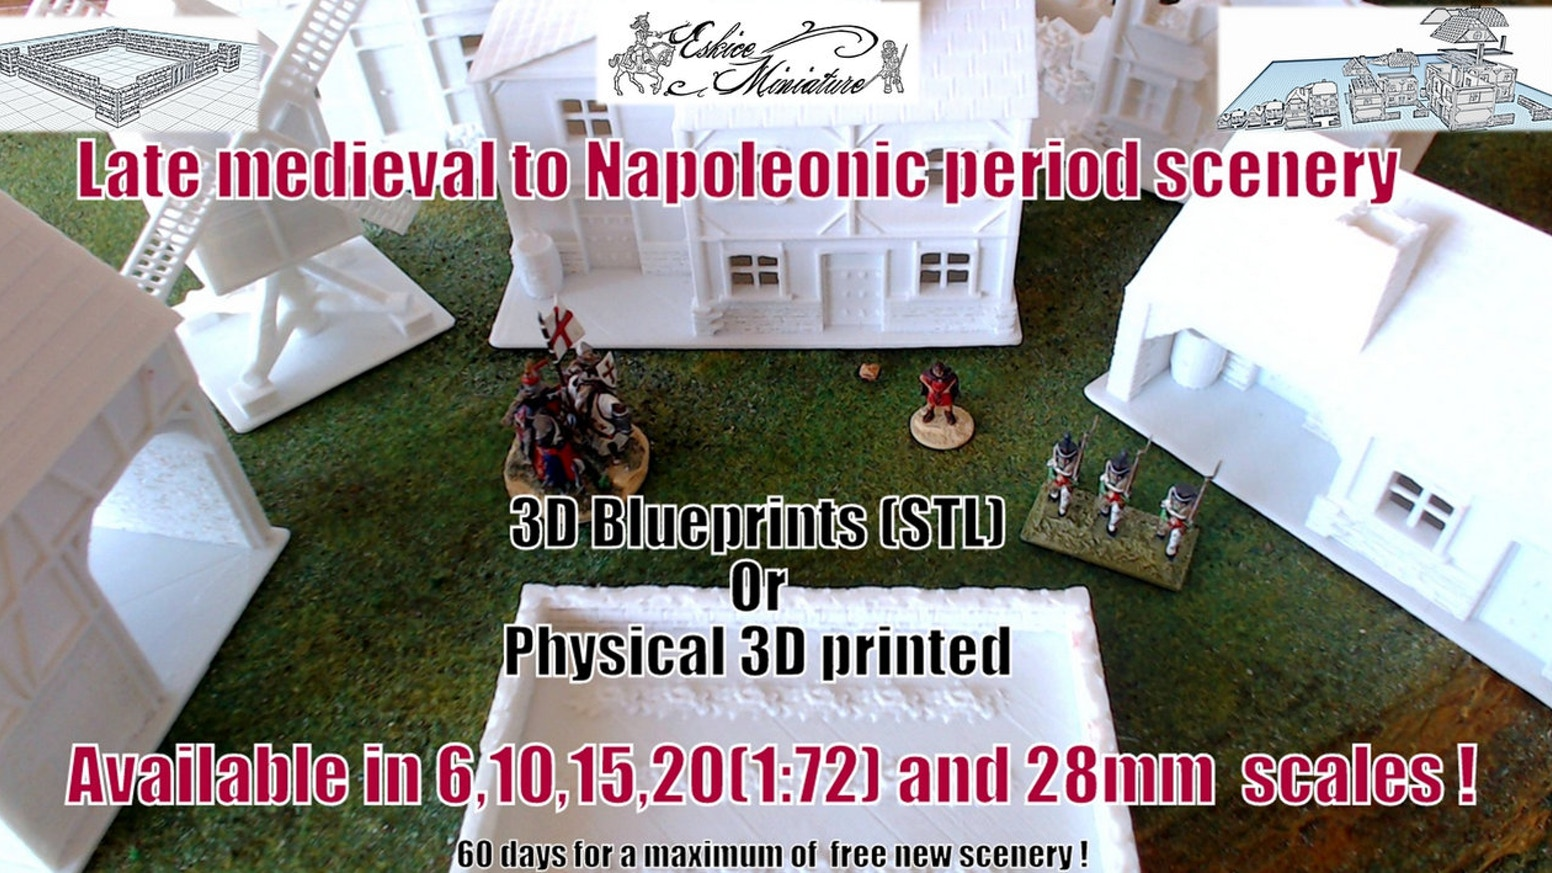 A complete set of scenery for the medieval to Napoleonic period wargames for the 6, 10, 15, 20 & 28mm. Blueprint .stl available.